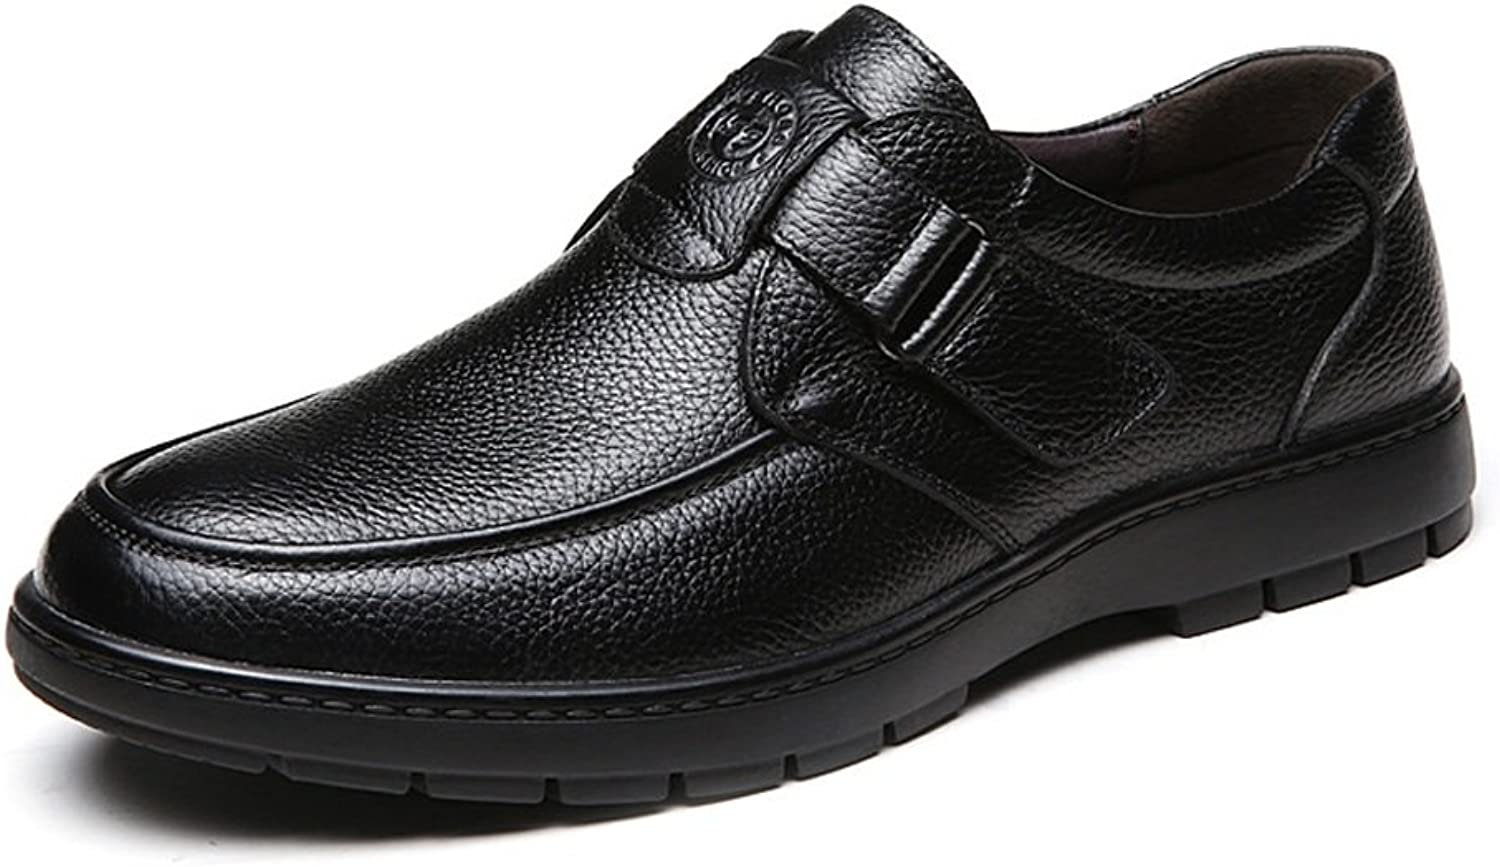 XHD- Classic shoes Classic Comfort shoes Men's shoes Genuine Cowhide Leather Upper Slip-on Flat Soft Sole Loafer